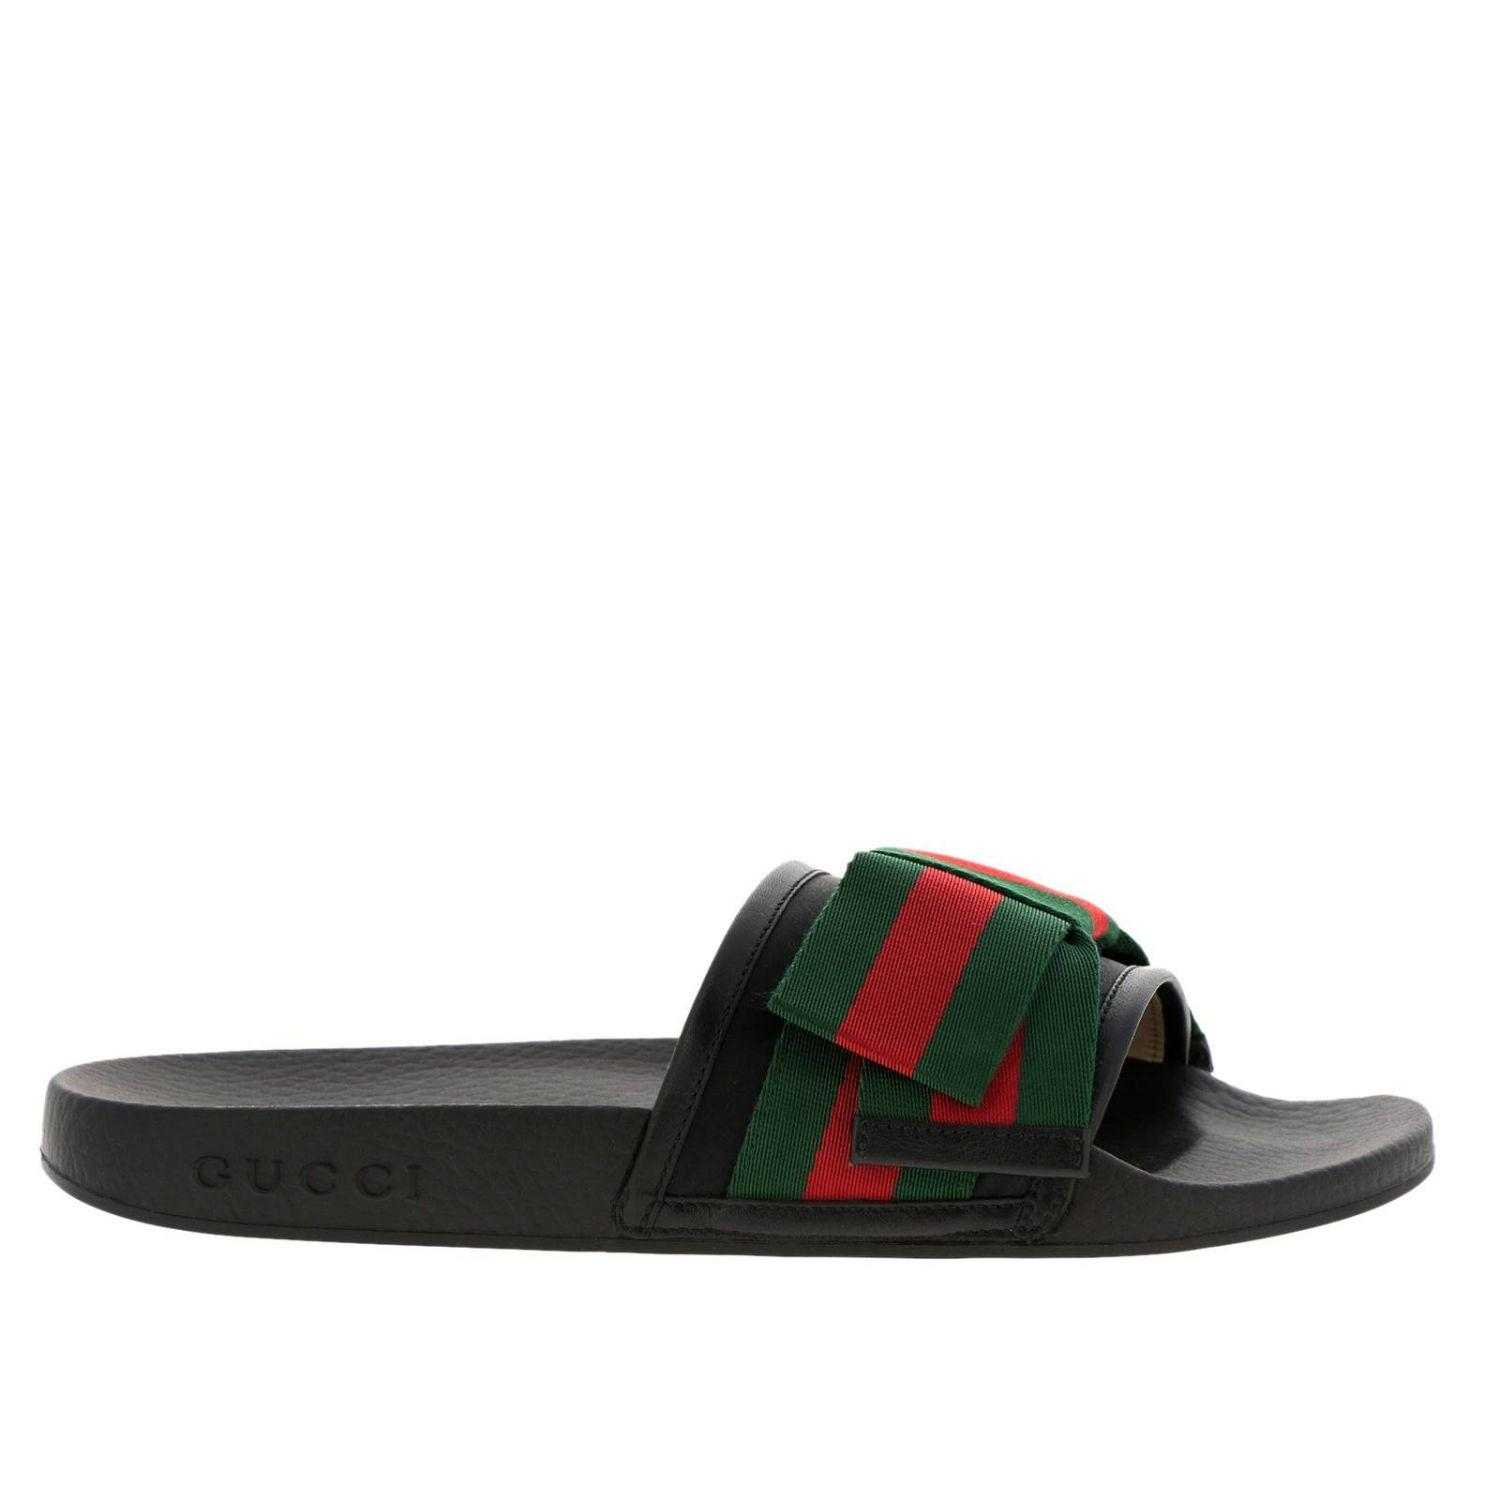 76fdfeaf3ad241 Lyst - Gucci Flat Sandals Shoes Women in Black - Save 17%